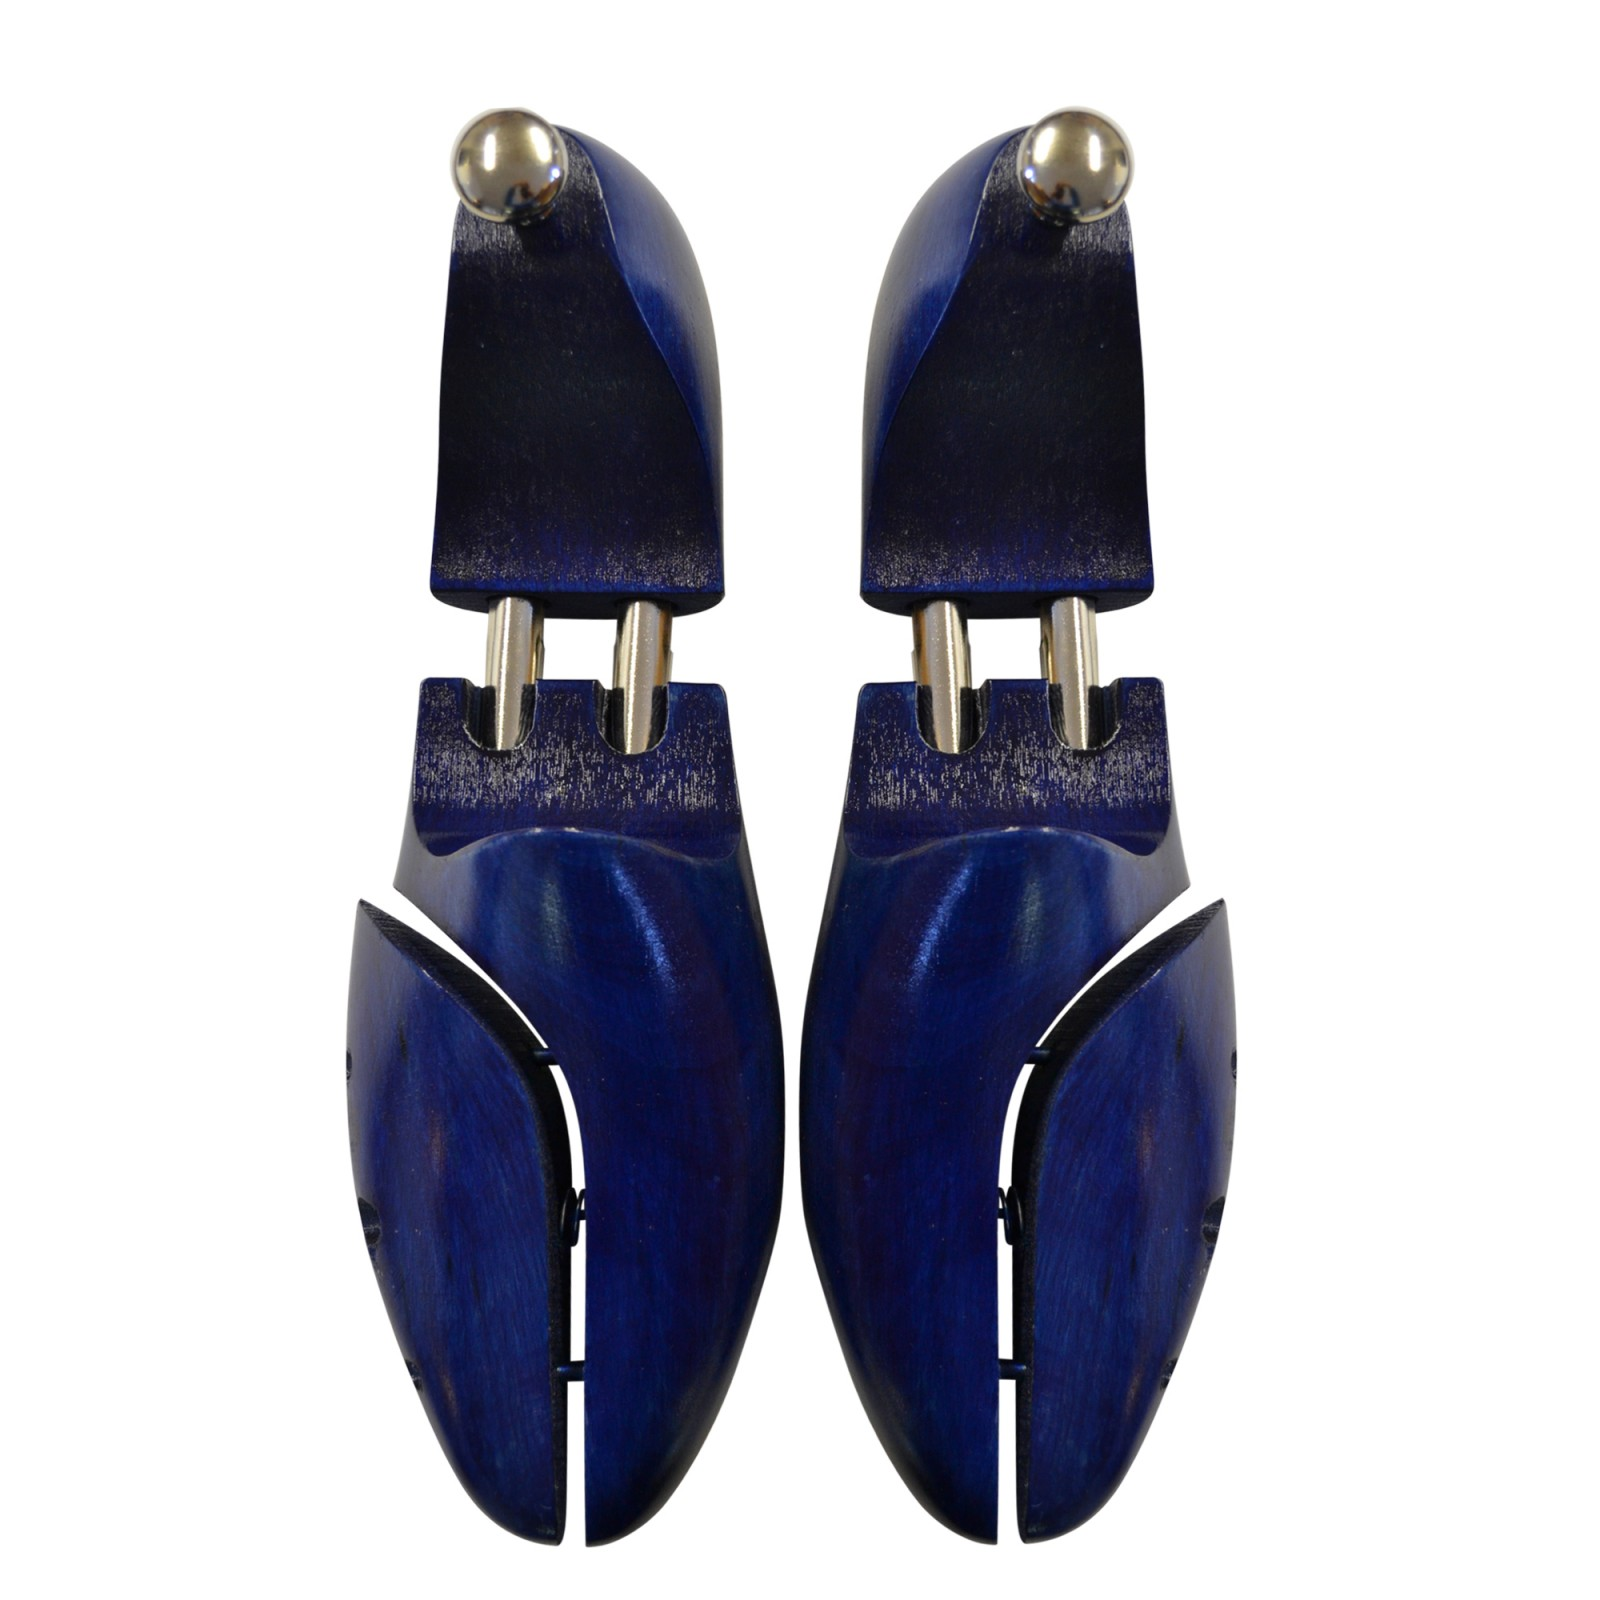 Shoestring Deluxe Blue Beechwood Shoe Trees